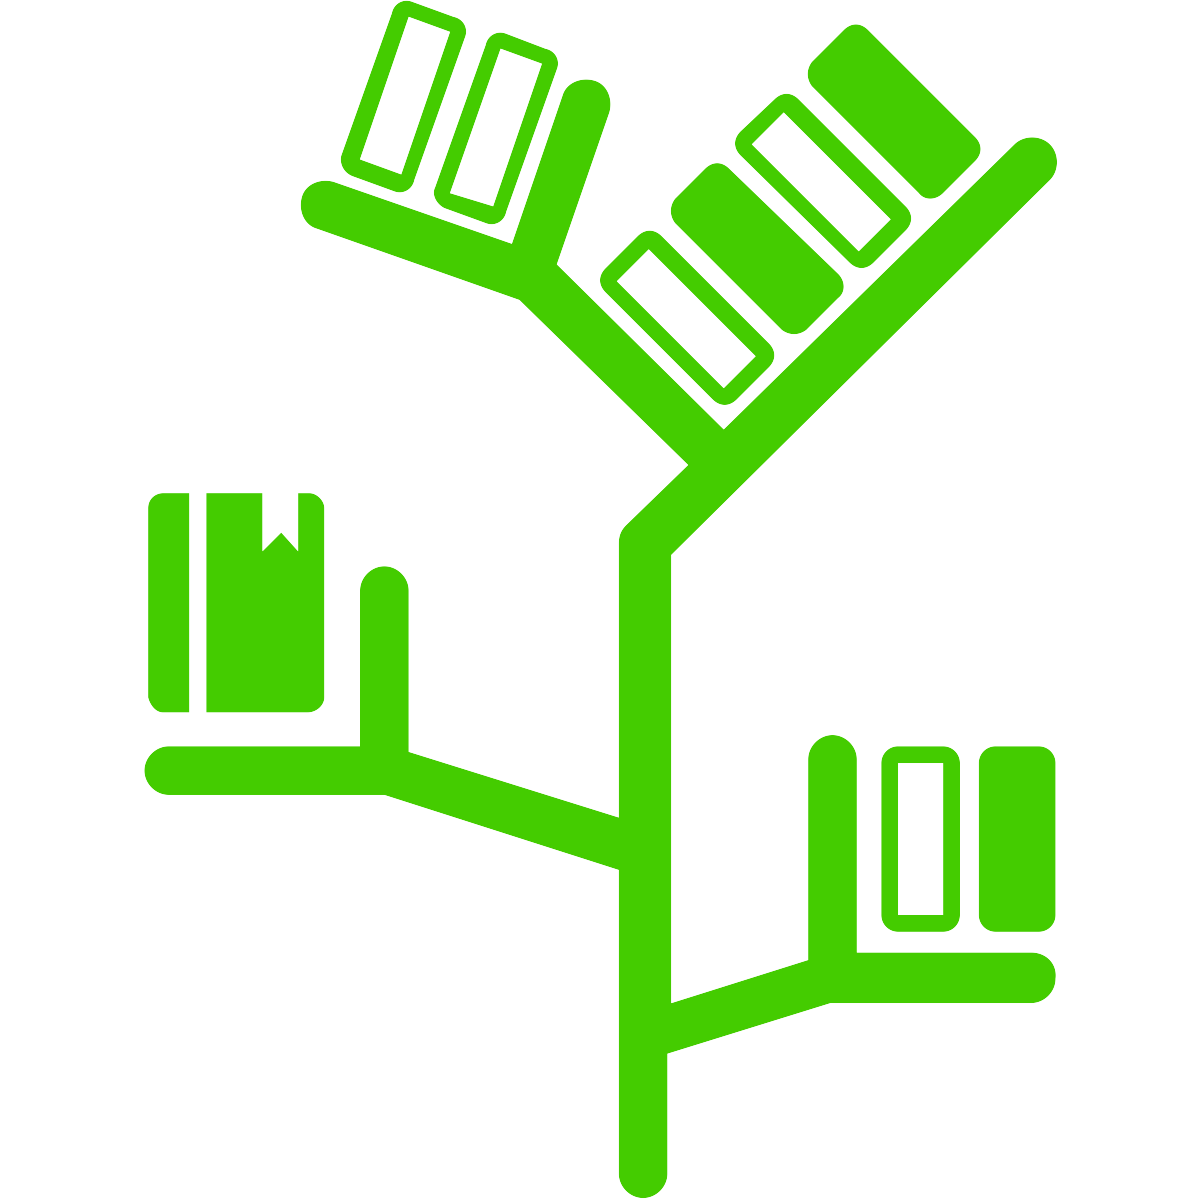 line drawing of a green book shelf shaped somewhat like a tree